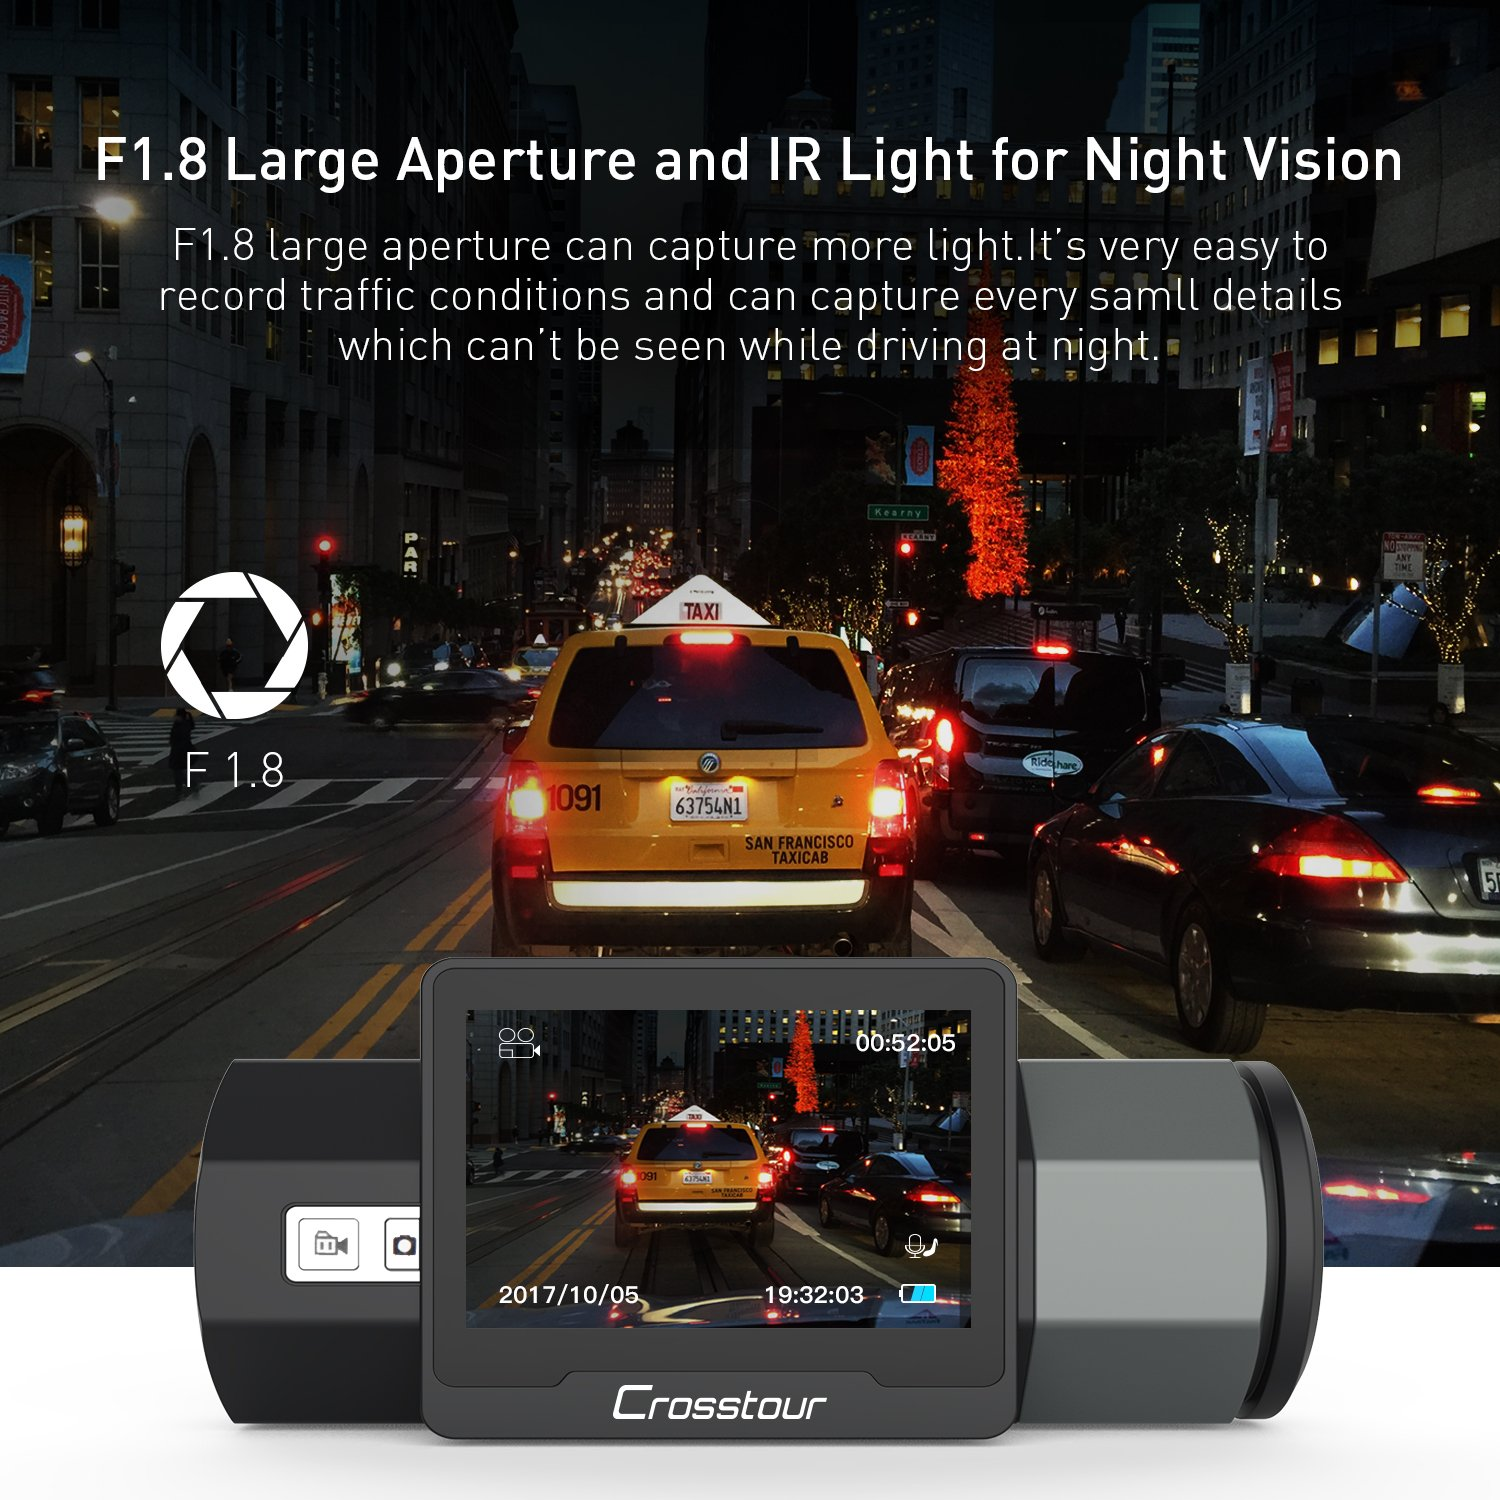 Crosstour Dash Cam 1080P FHD DVR Car Dashboard Camera Video Recorder for Cars 170° Wide Angle WDR with 2 inch LCD, Night Vision,Motion Detection, Loop Recording and G-Sensor by Crosstour (Image #3)